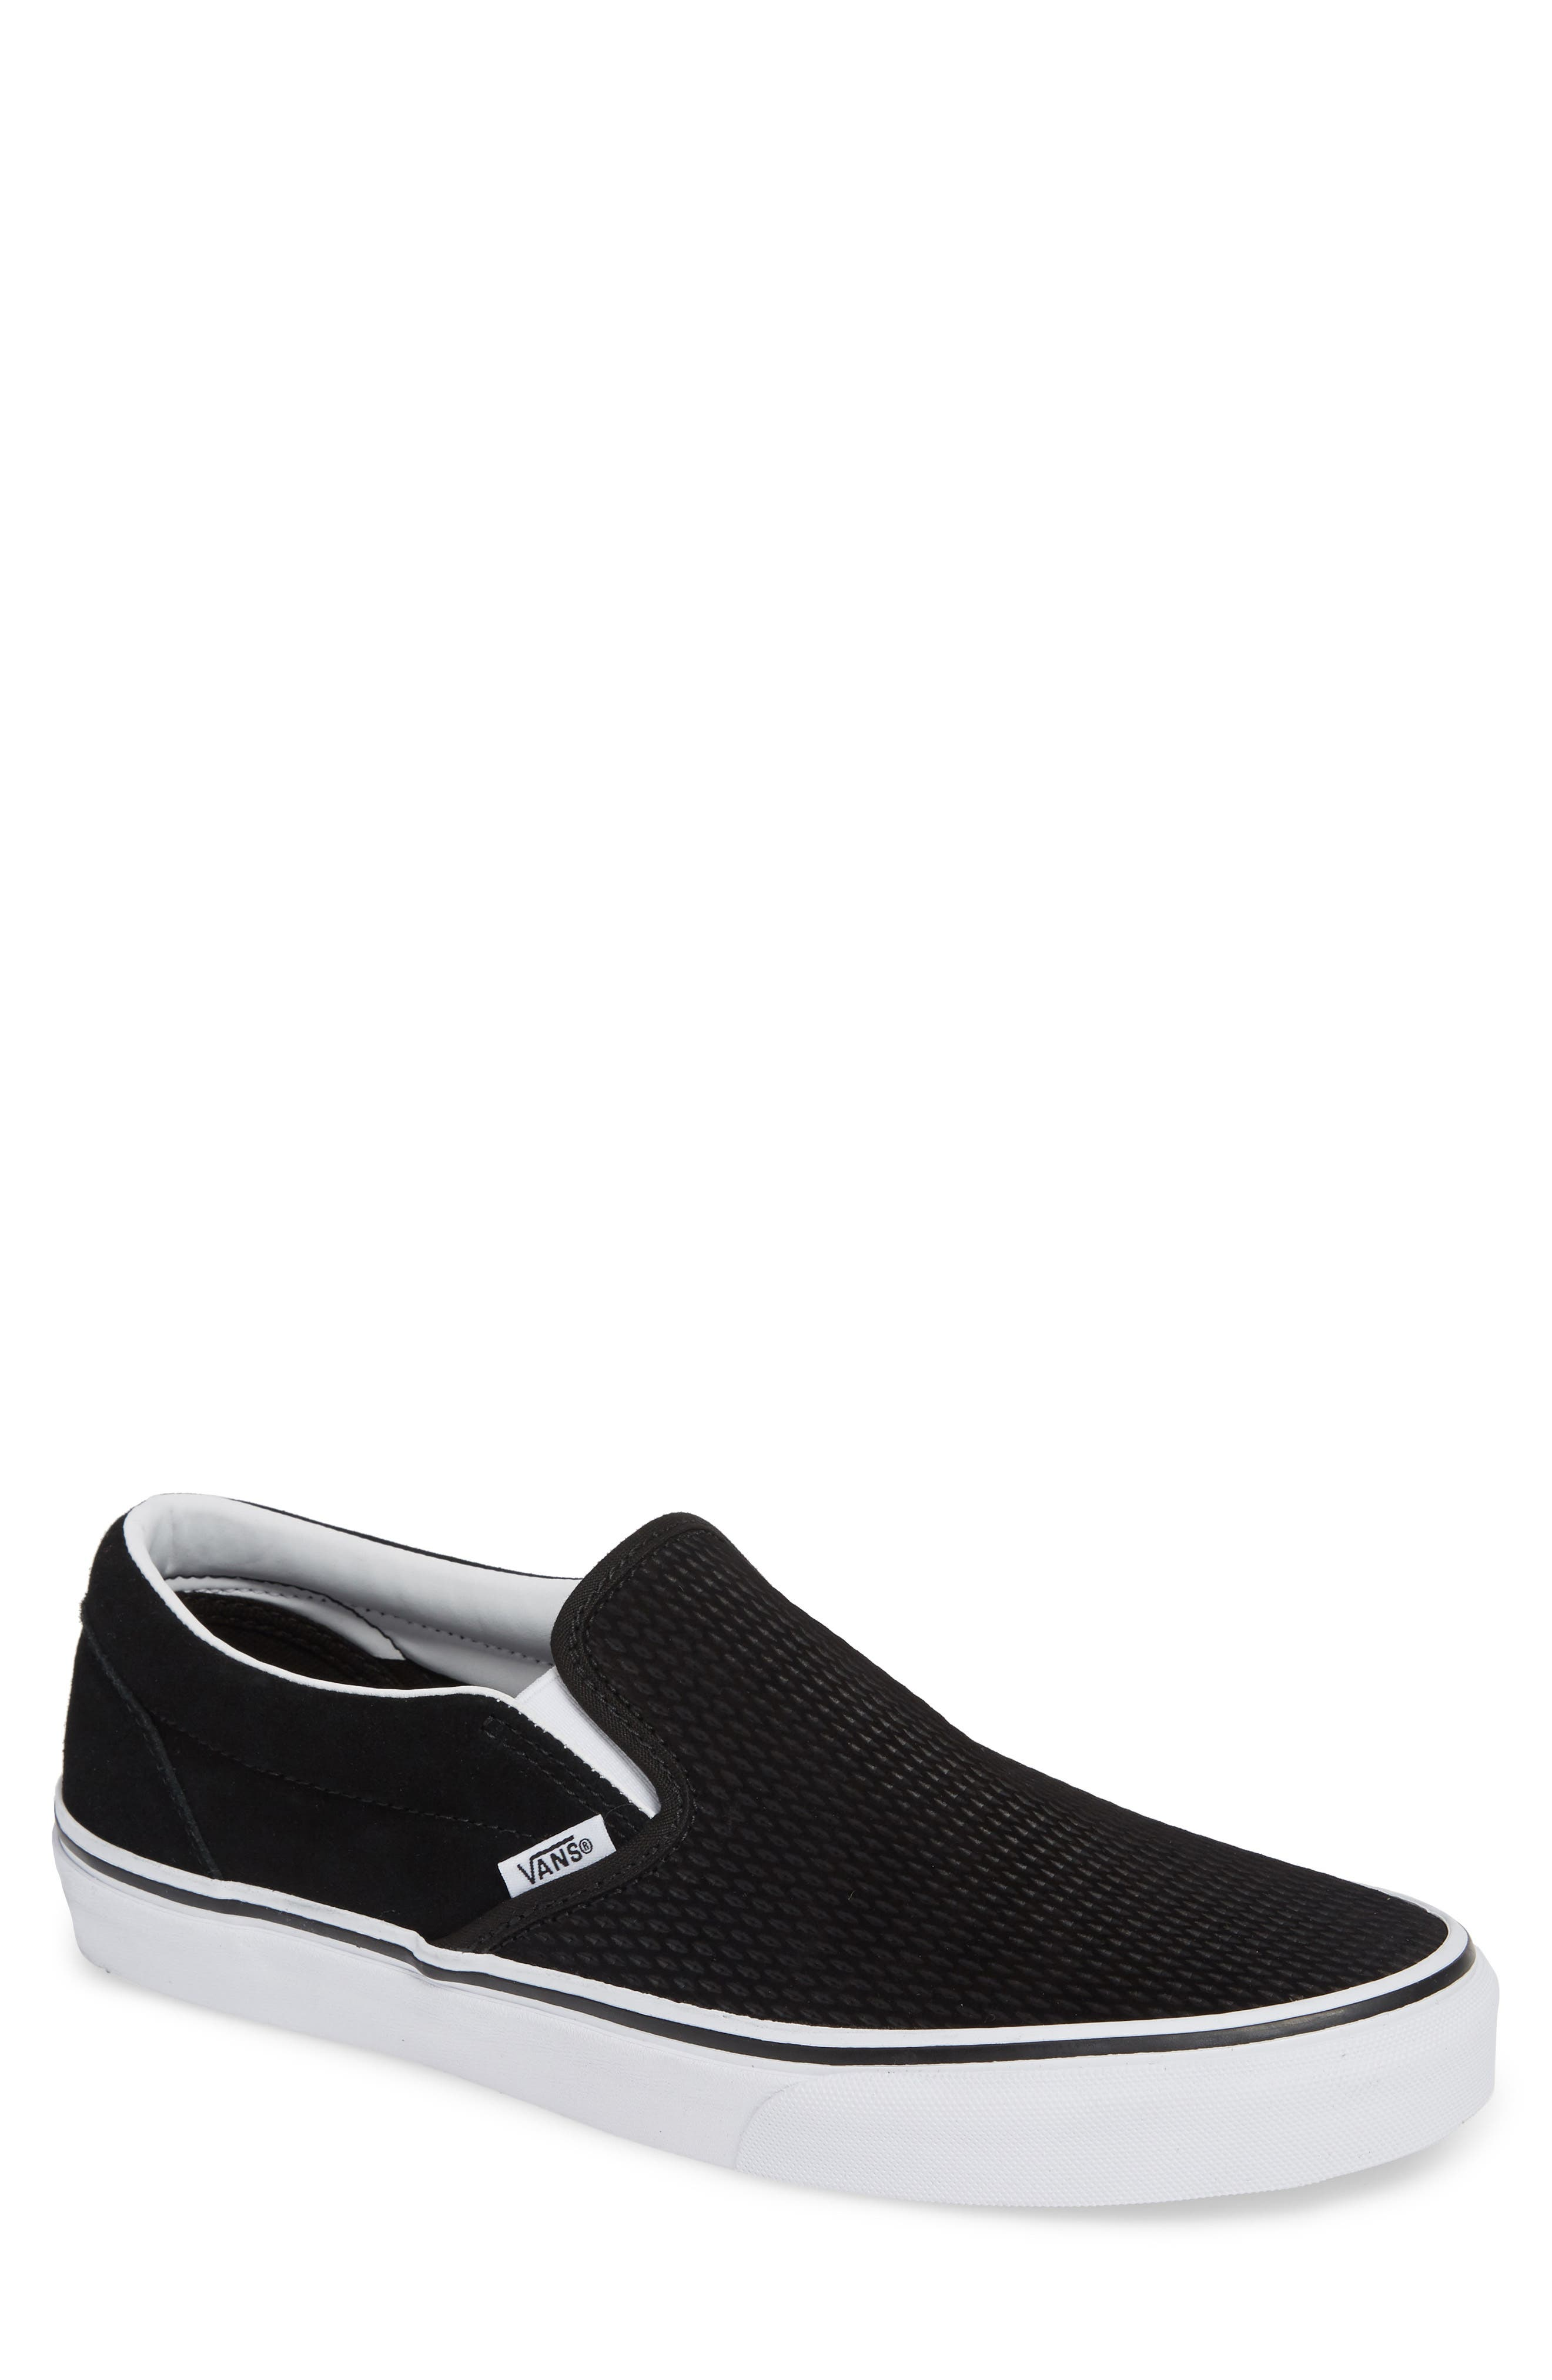 Classic Embossed Suede Slip-On,                         Main,                         color, 001